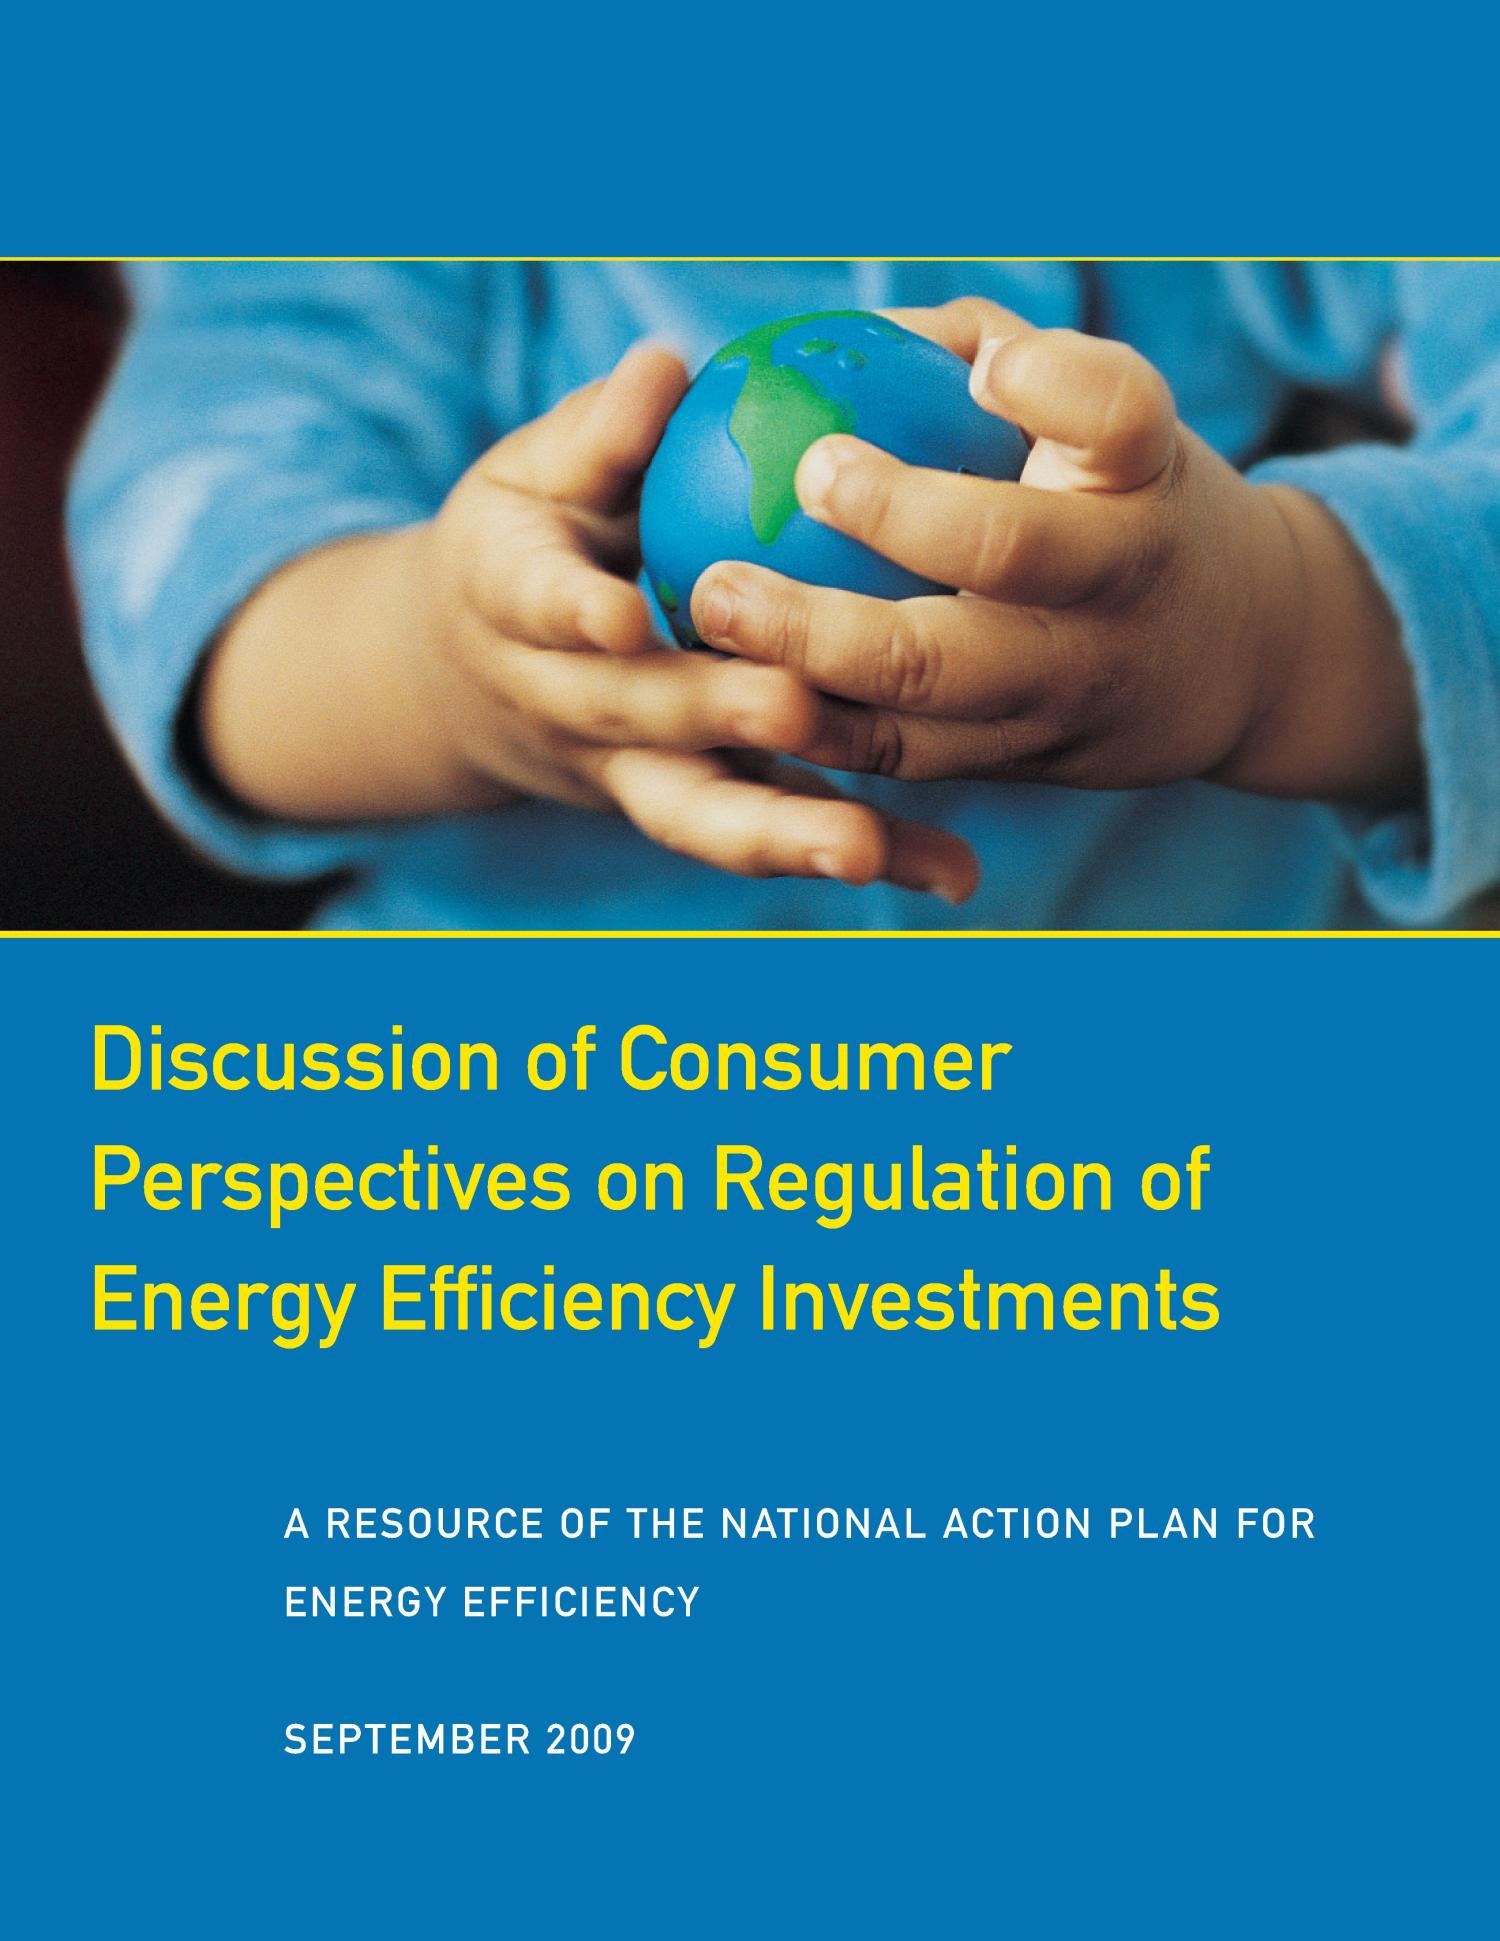 Discussion of Consumer Perspectives on Regulation of Energy Efficiency Investments                                                                                                      [Sequence #]: 1 of 44